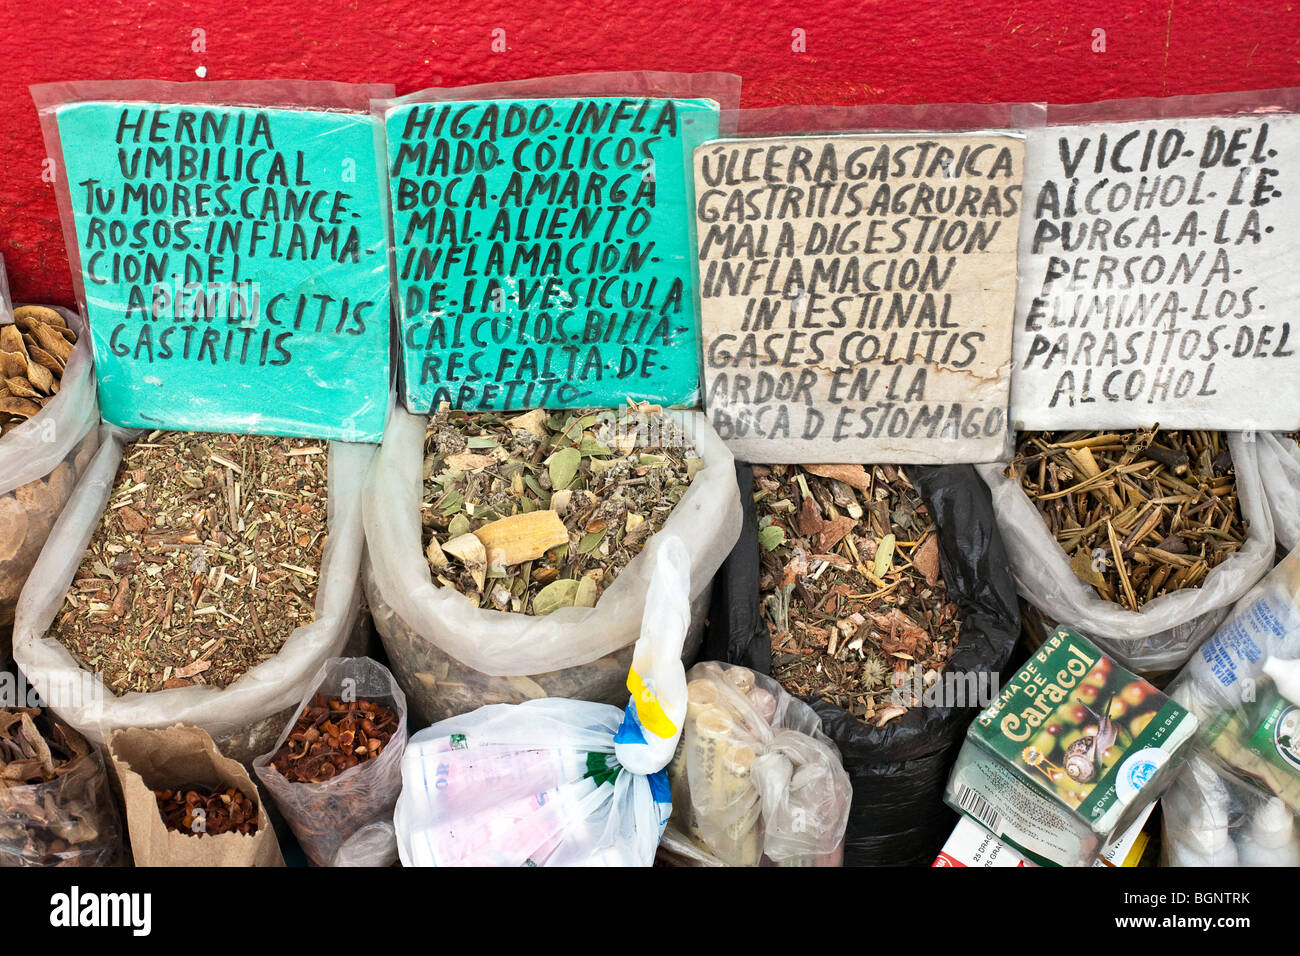 sacks of rather ugly herbal remedies for ailments including colitis alcohol parasites displayed in open containers - Stock Image